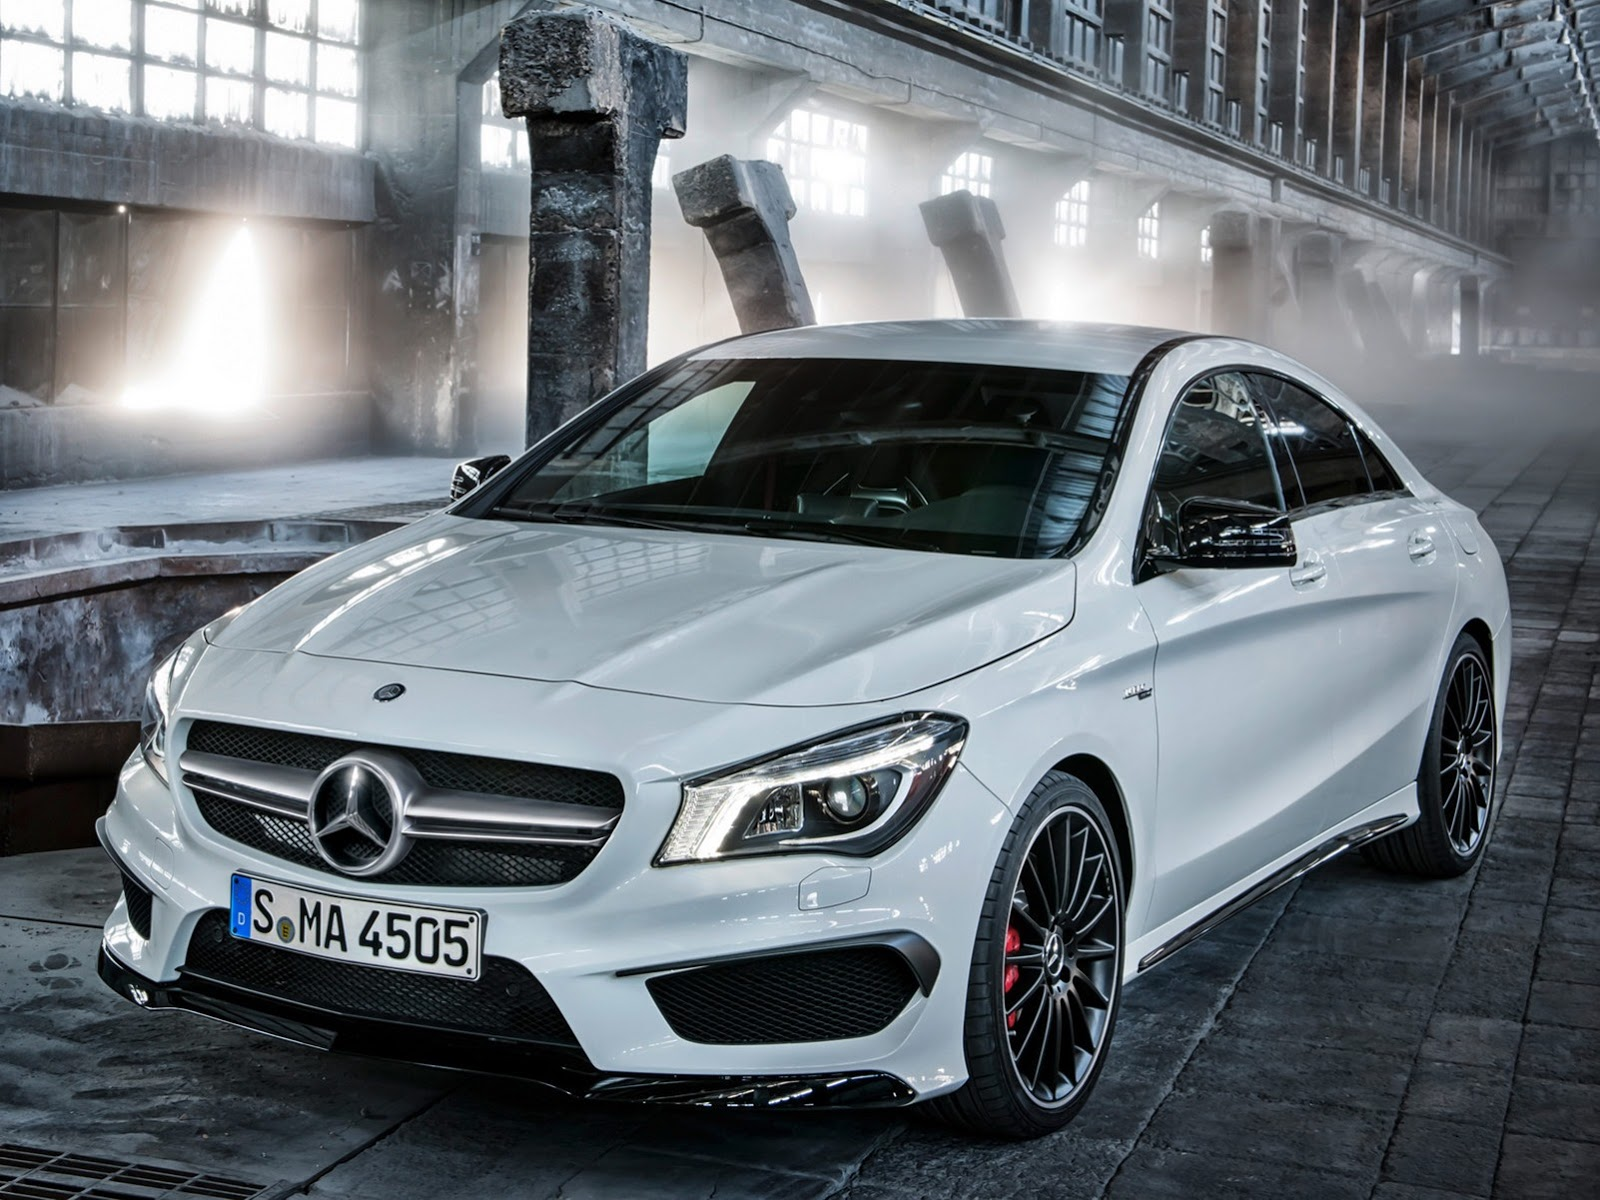 Mercedes Cla45 Amg 2014 Mercedes Cla 45 Amg First Photos Leaked Autoevolution